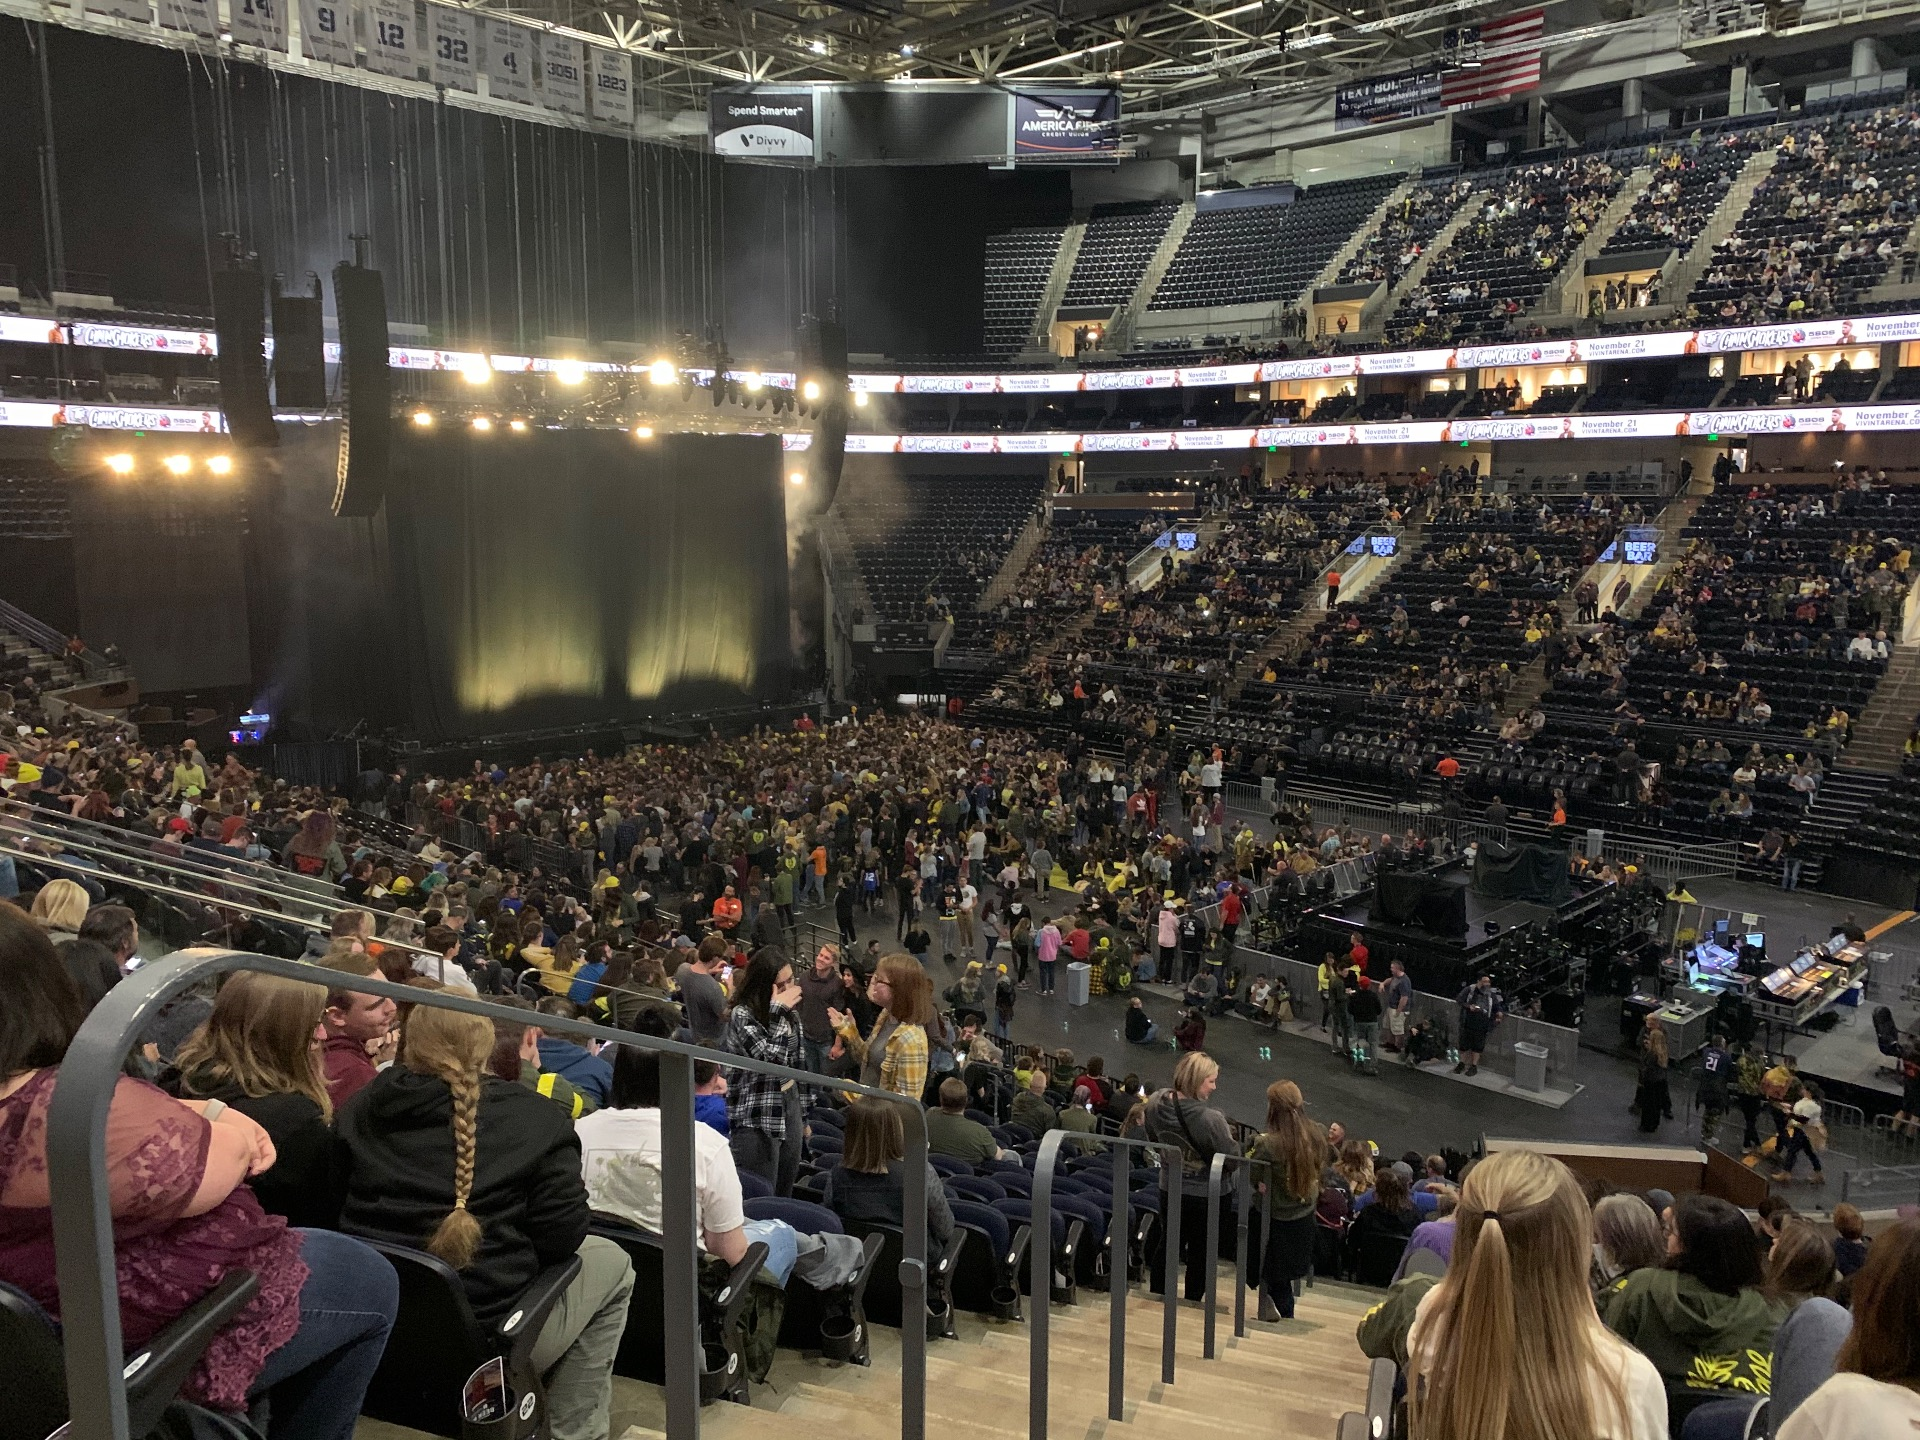 Vivint Arena Section 4 Row 25 Seat 21